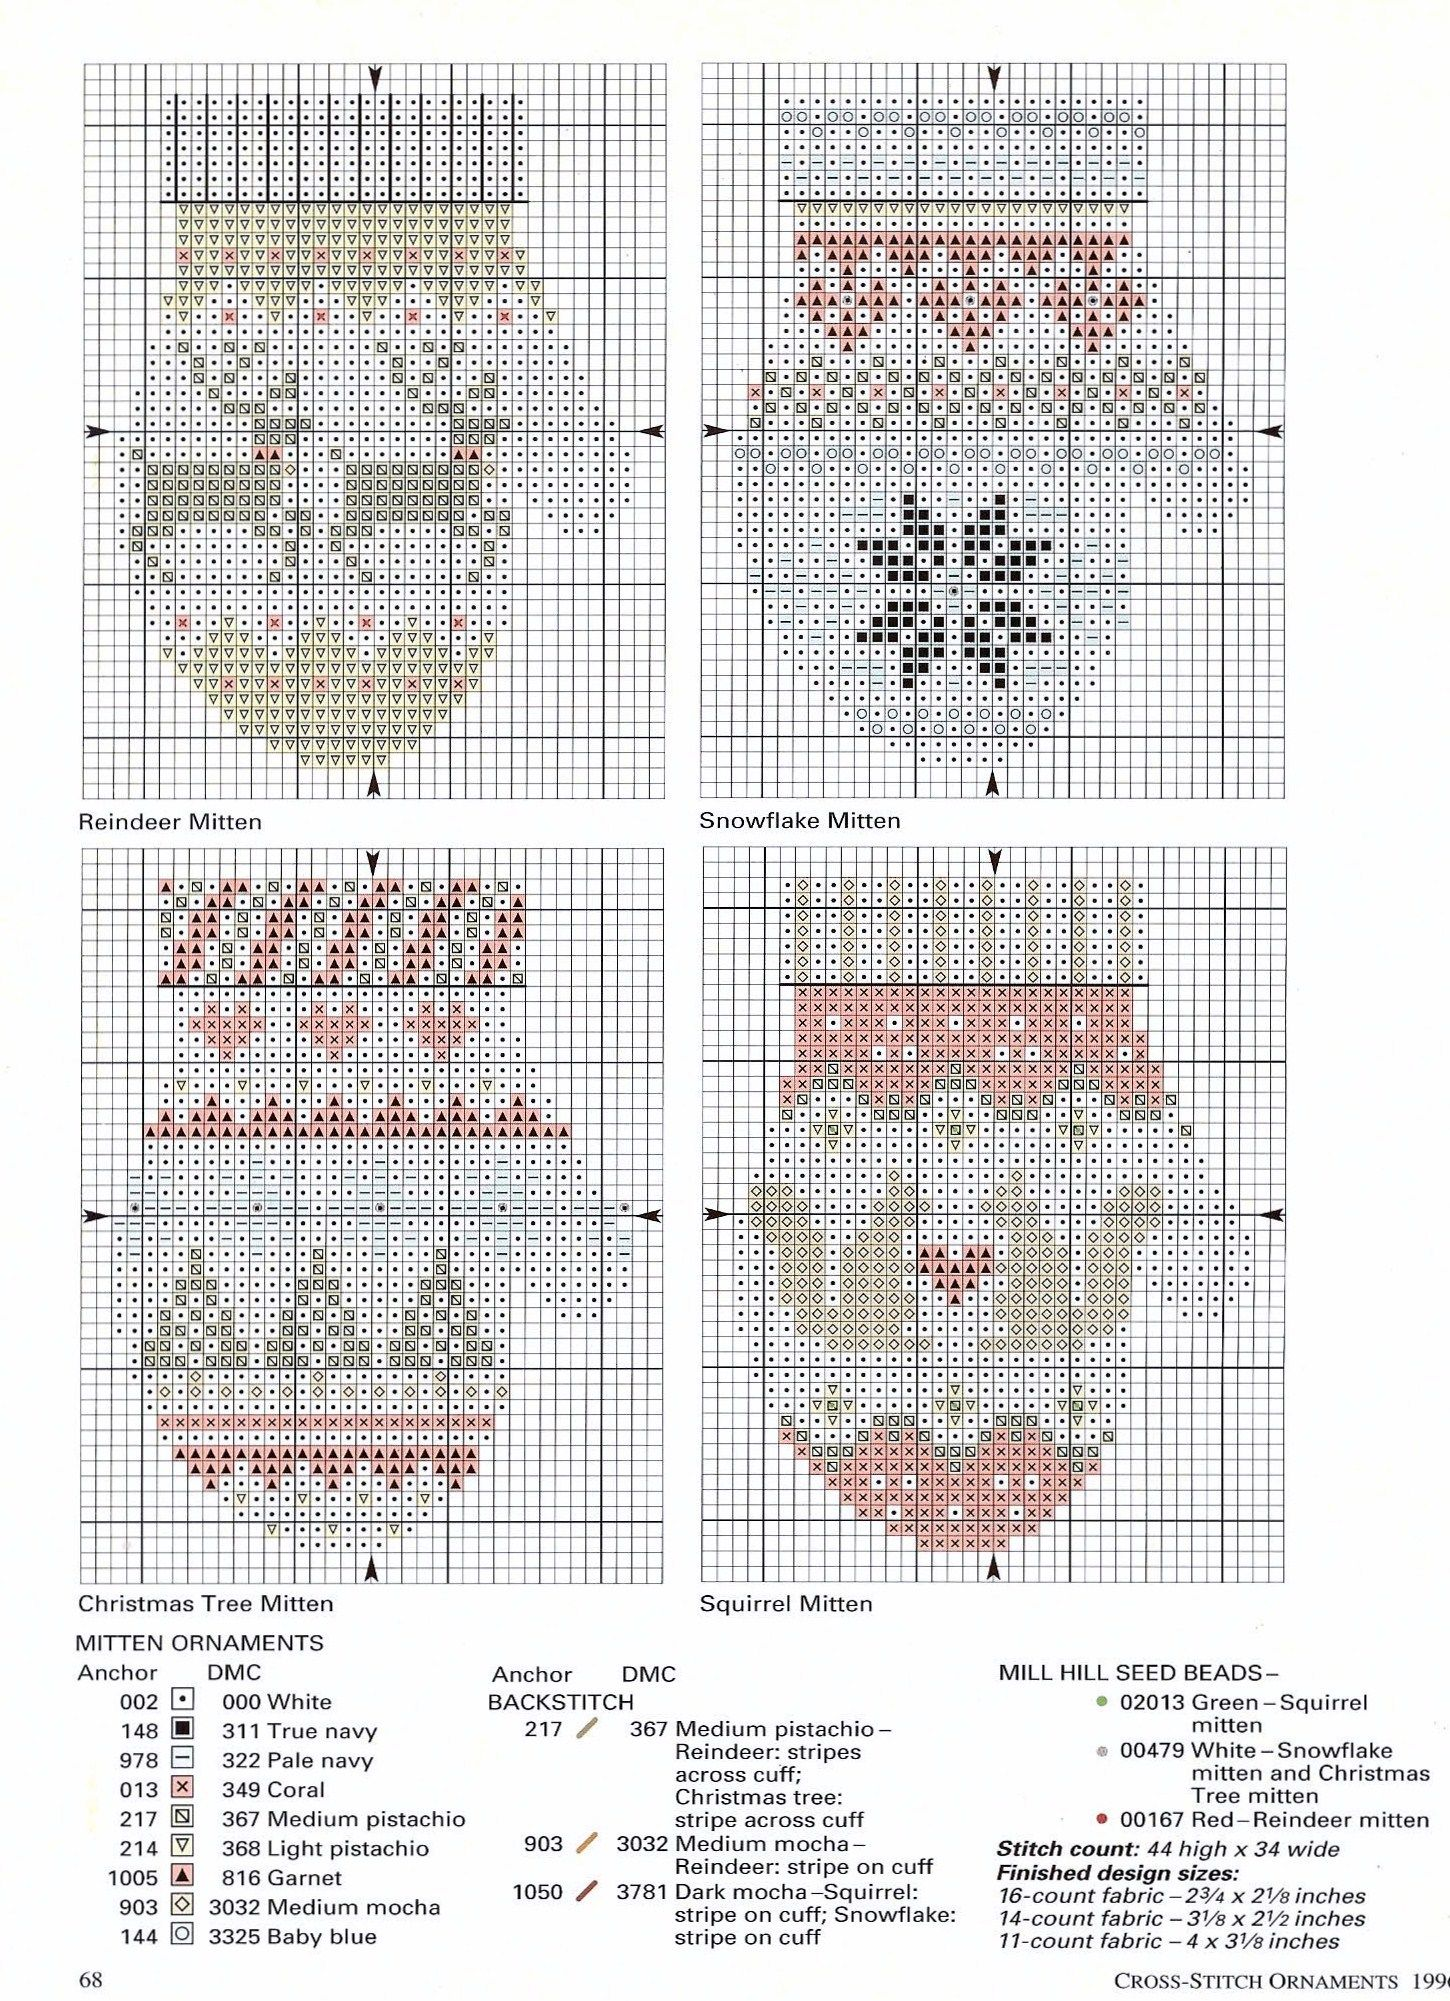 Mittenste little ornaments cross stitch pinterest